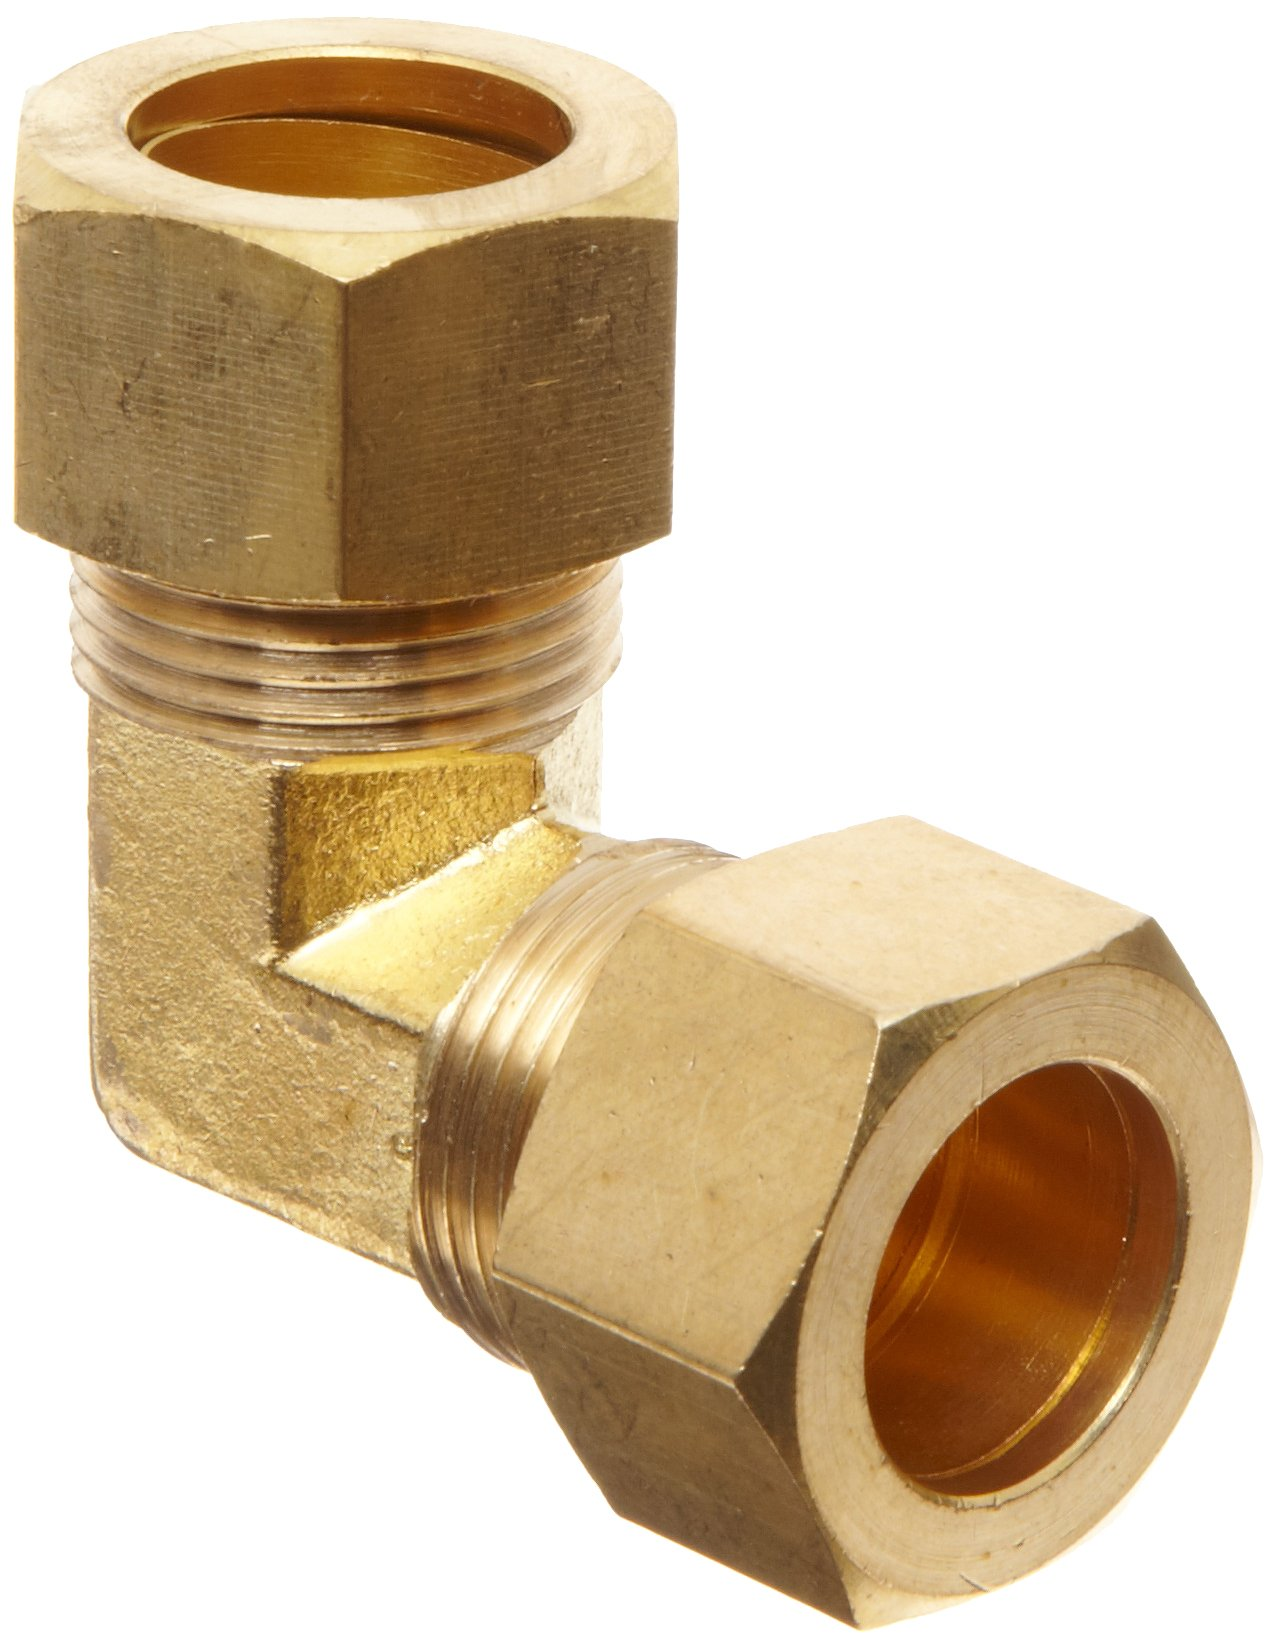 Anderson Metals Brass Tube Fitting, Elbow, 3/4'' x 3/4'' Compression